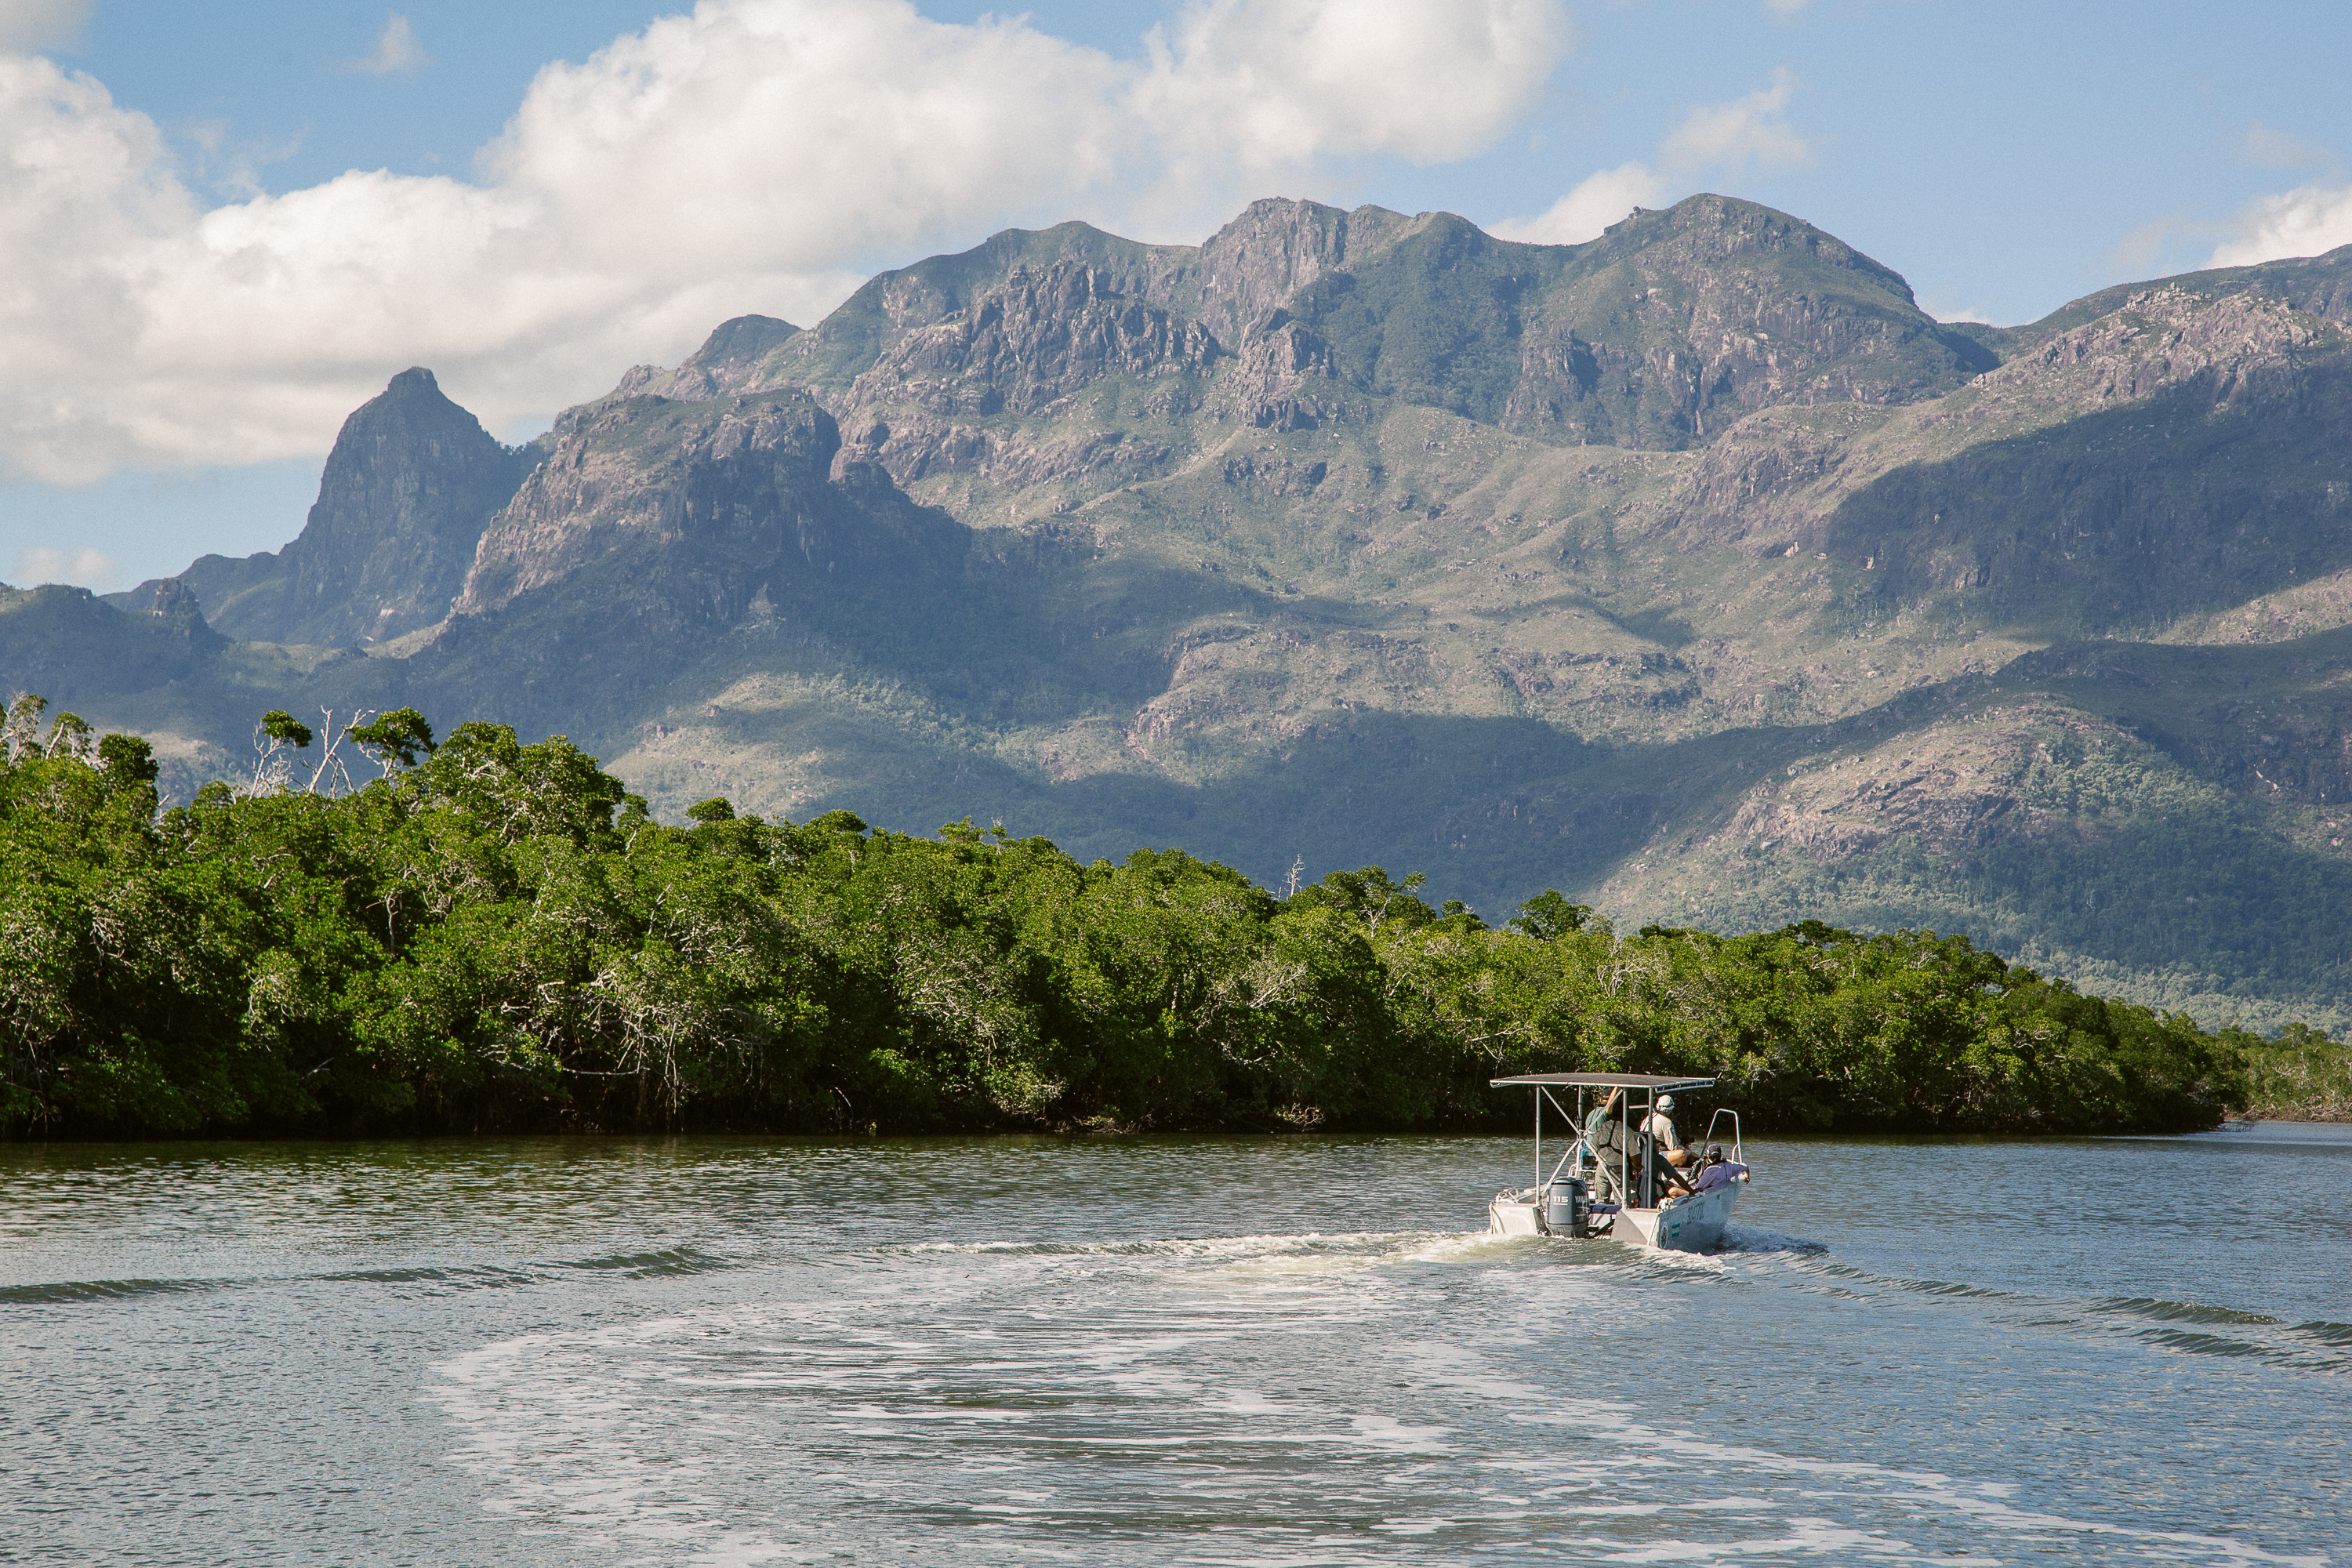 A passenger boat navigates a channel through mangrove swamps. The boat is heading for the trailhead of the Thorsborne Trail, a 40km hiking path that visits several of Hinchinbrook Island's beaches and waterfalls. Situated off the coast of North Queensland, Australia, Hinchinbrook Island is a mountainous National Park characterised by rainforest and golden beaches. Walkers typically take 4 days to complete the hike, and to protect the ecosystem of the island only 40 visitors are allowed onto the trail at any one time.